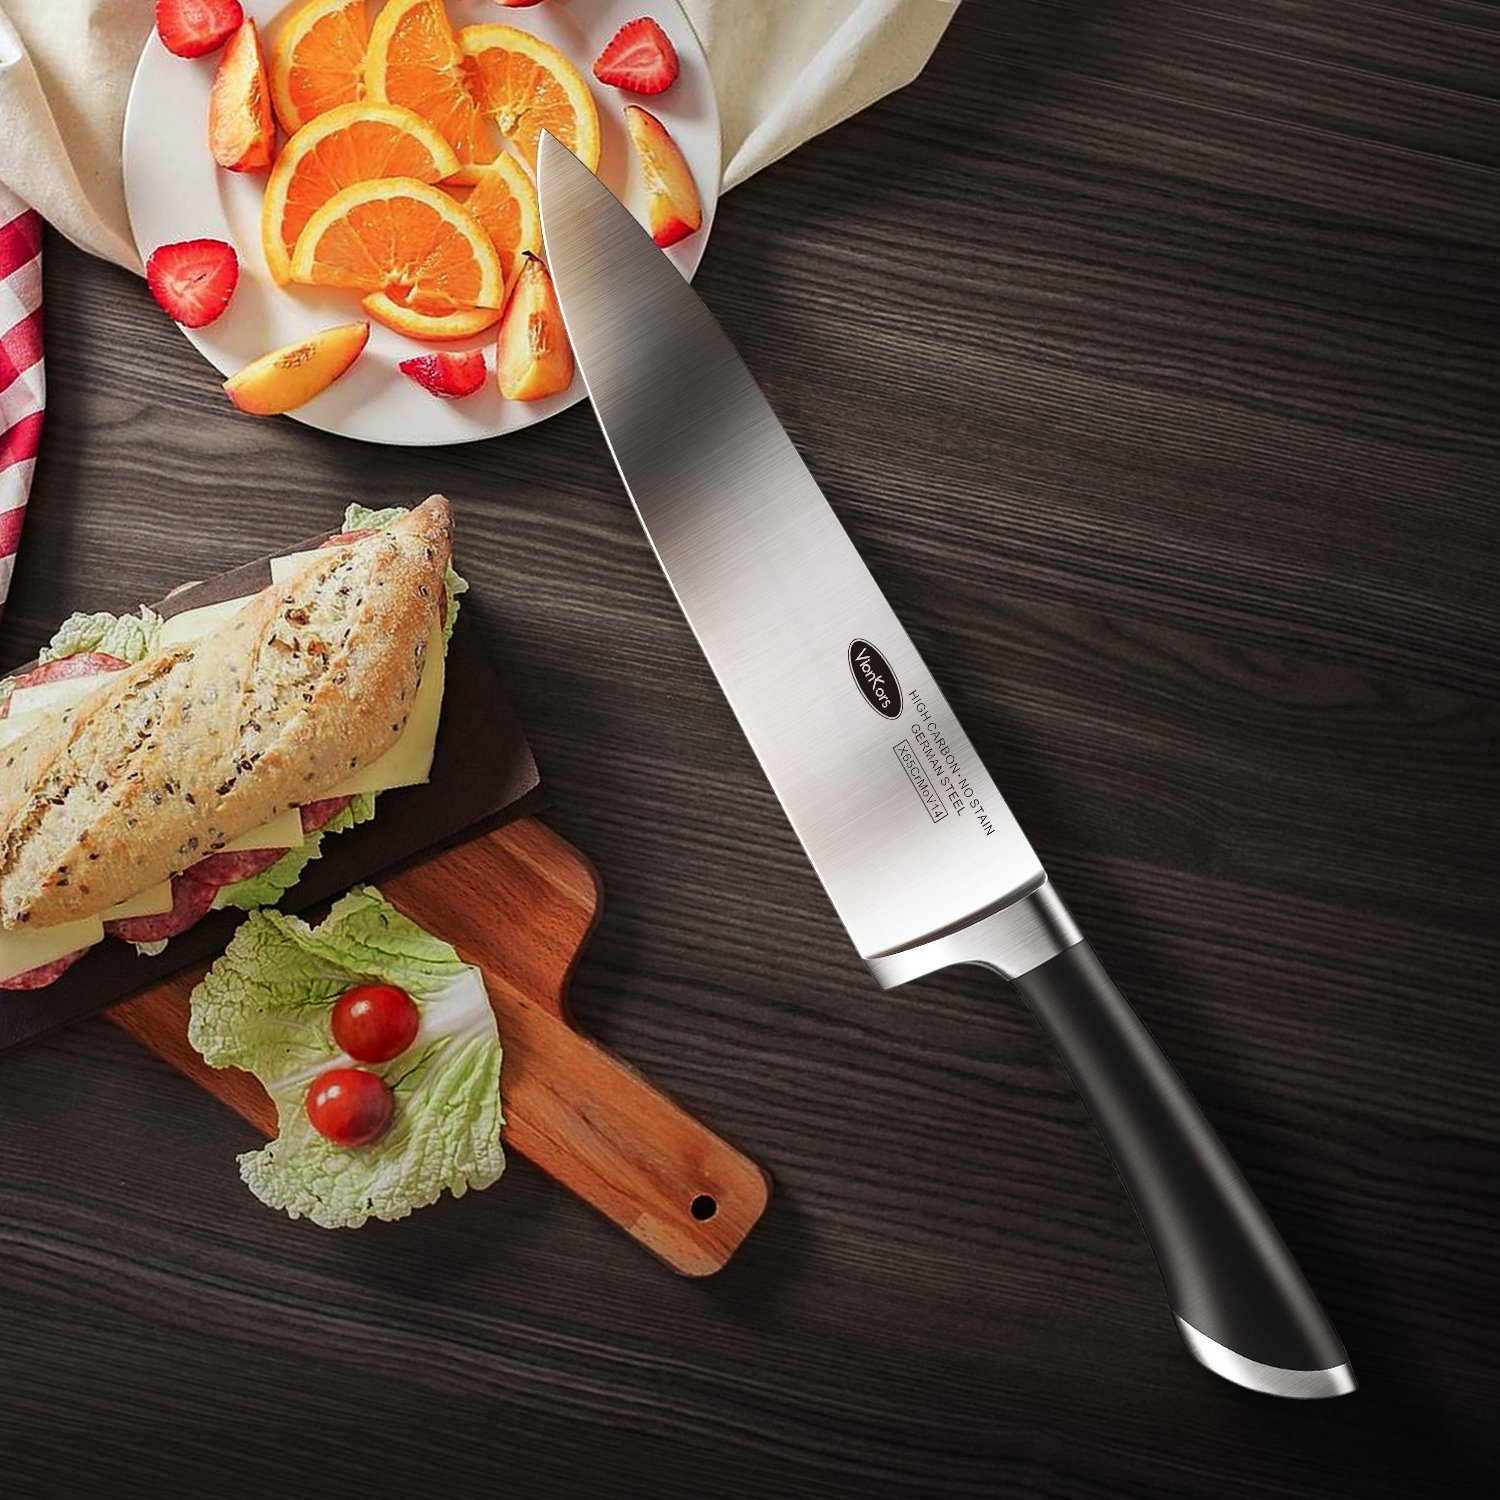 Kitchen Knife 8 inches Chef Knife - VIANKORS pro German stainless steel sharp knives, Highly Recommended,Razor Sharp, Ergonomic handle, For home & restaurant by Viankors (Image #6)